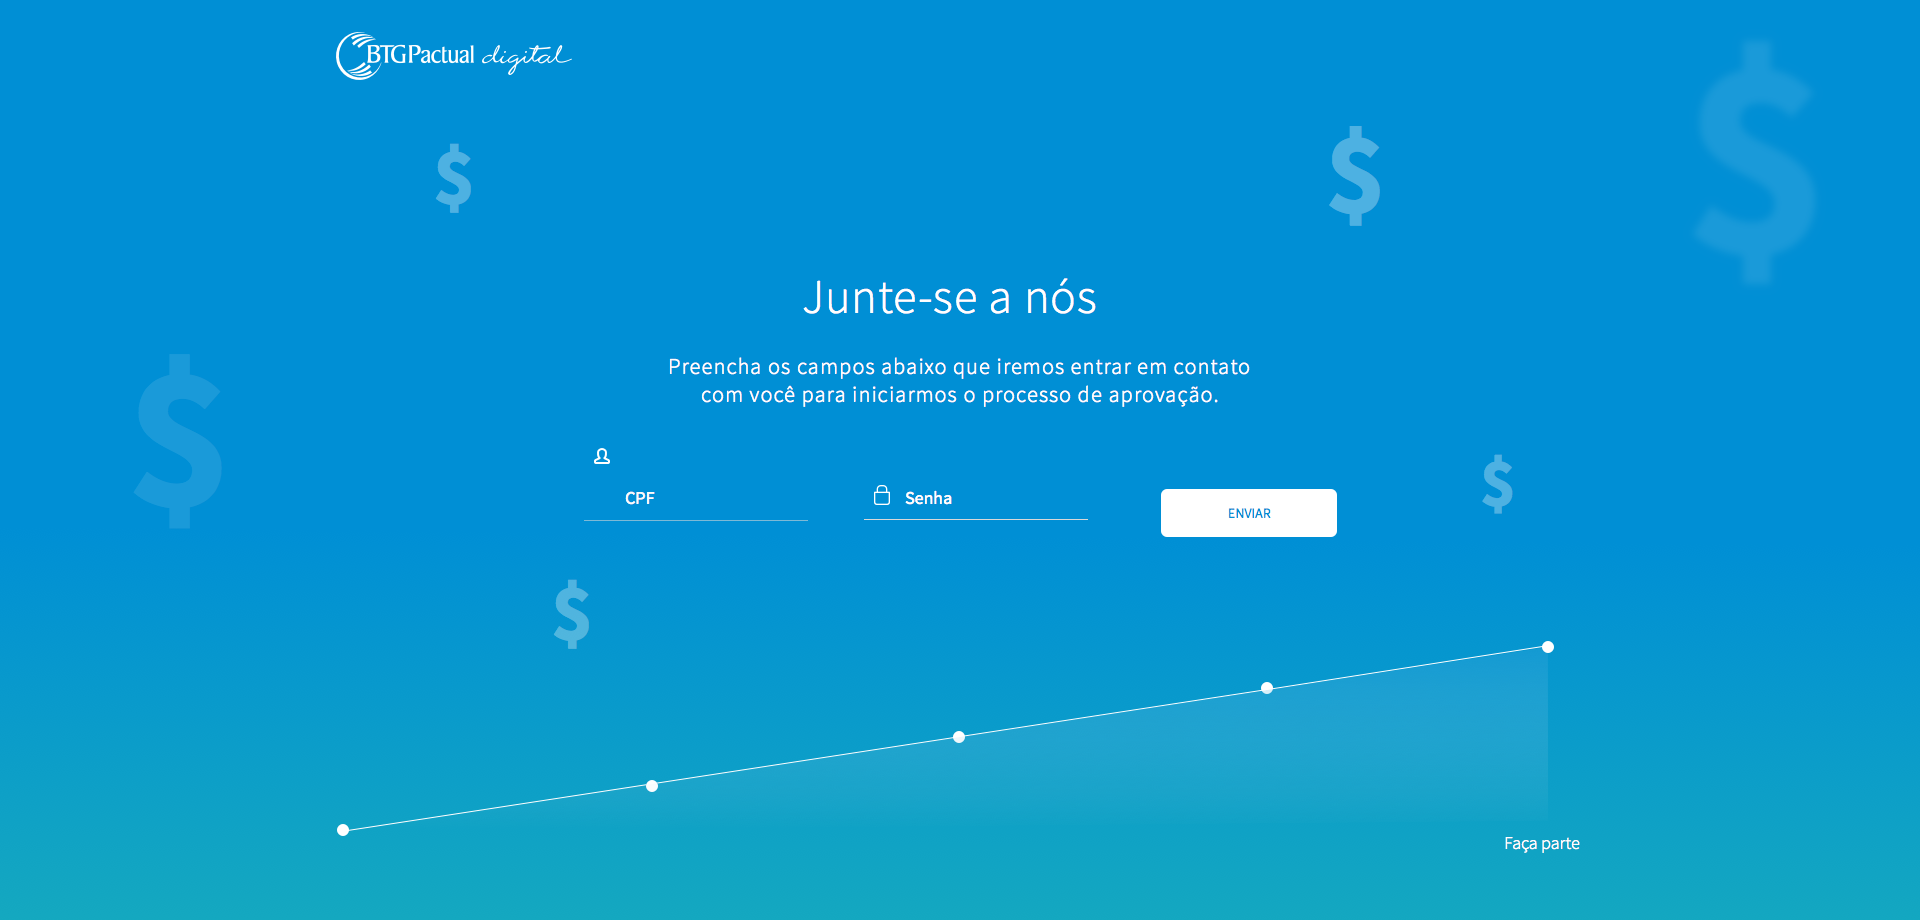 BTG-PACTUAL-Landing page-A5.png